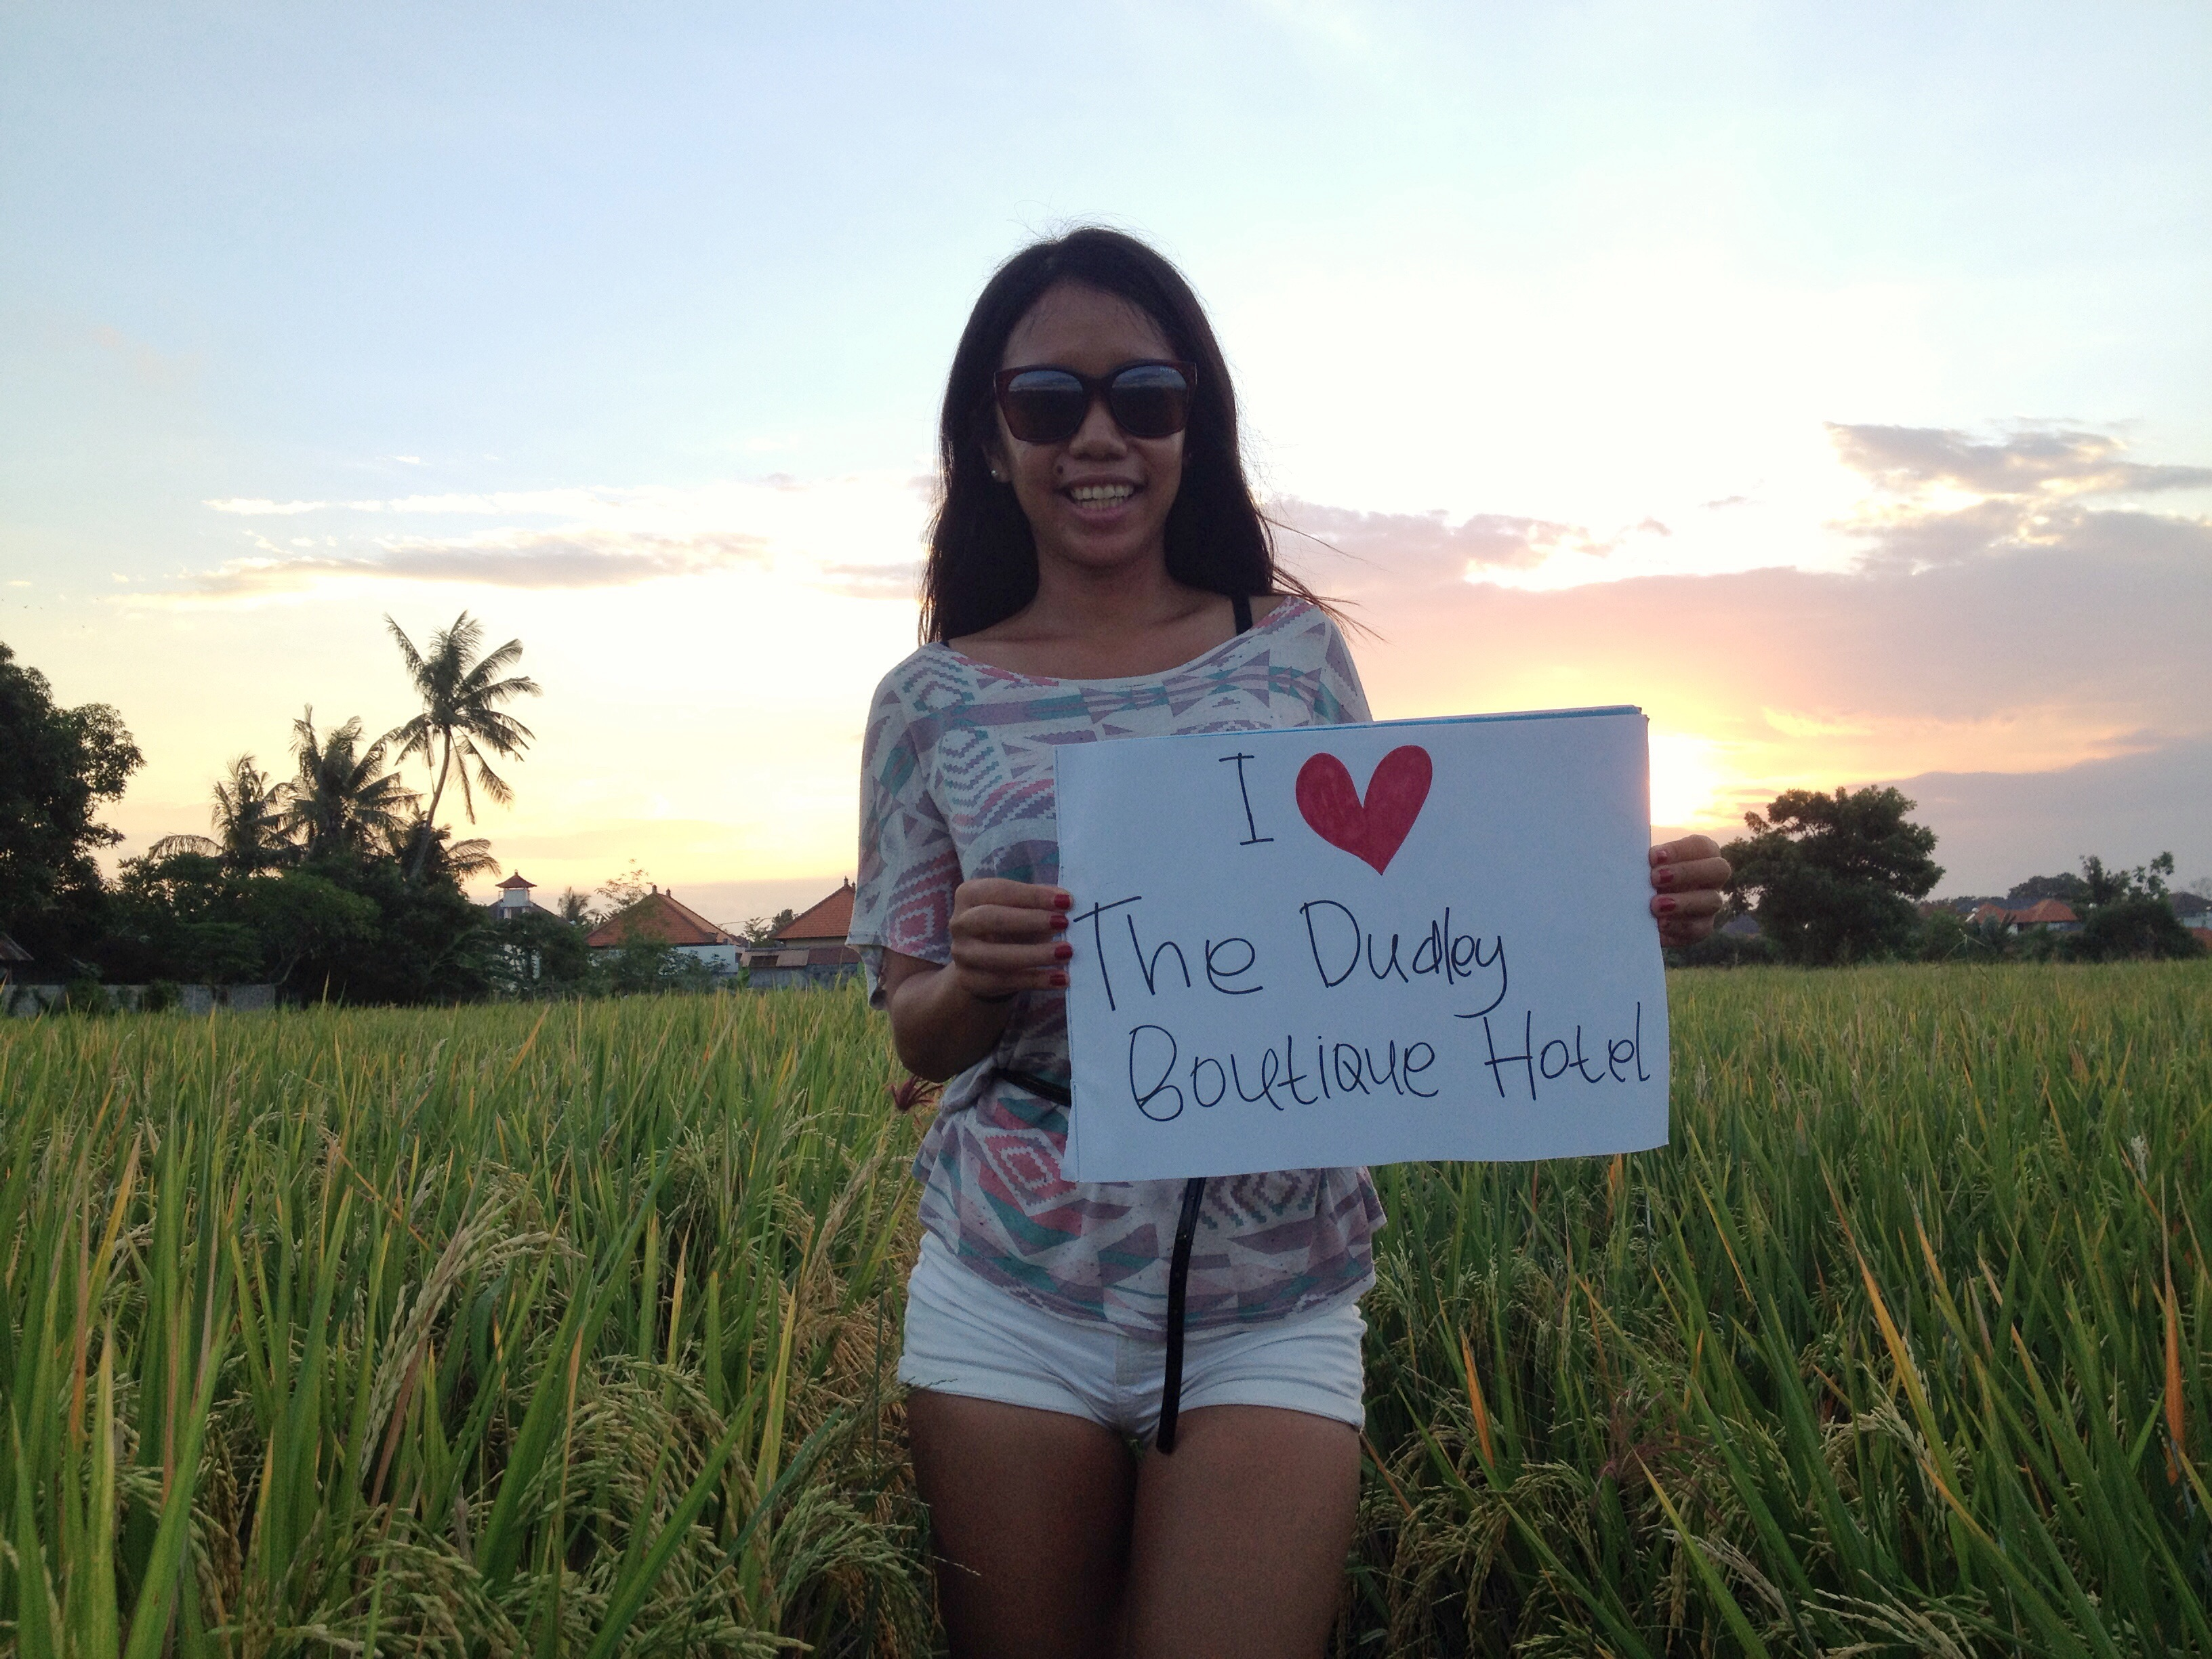 Hold a sign in beautiful place in bali